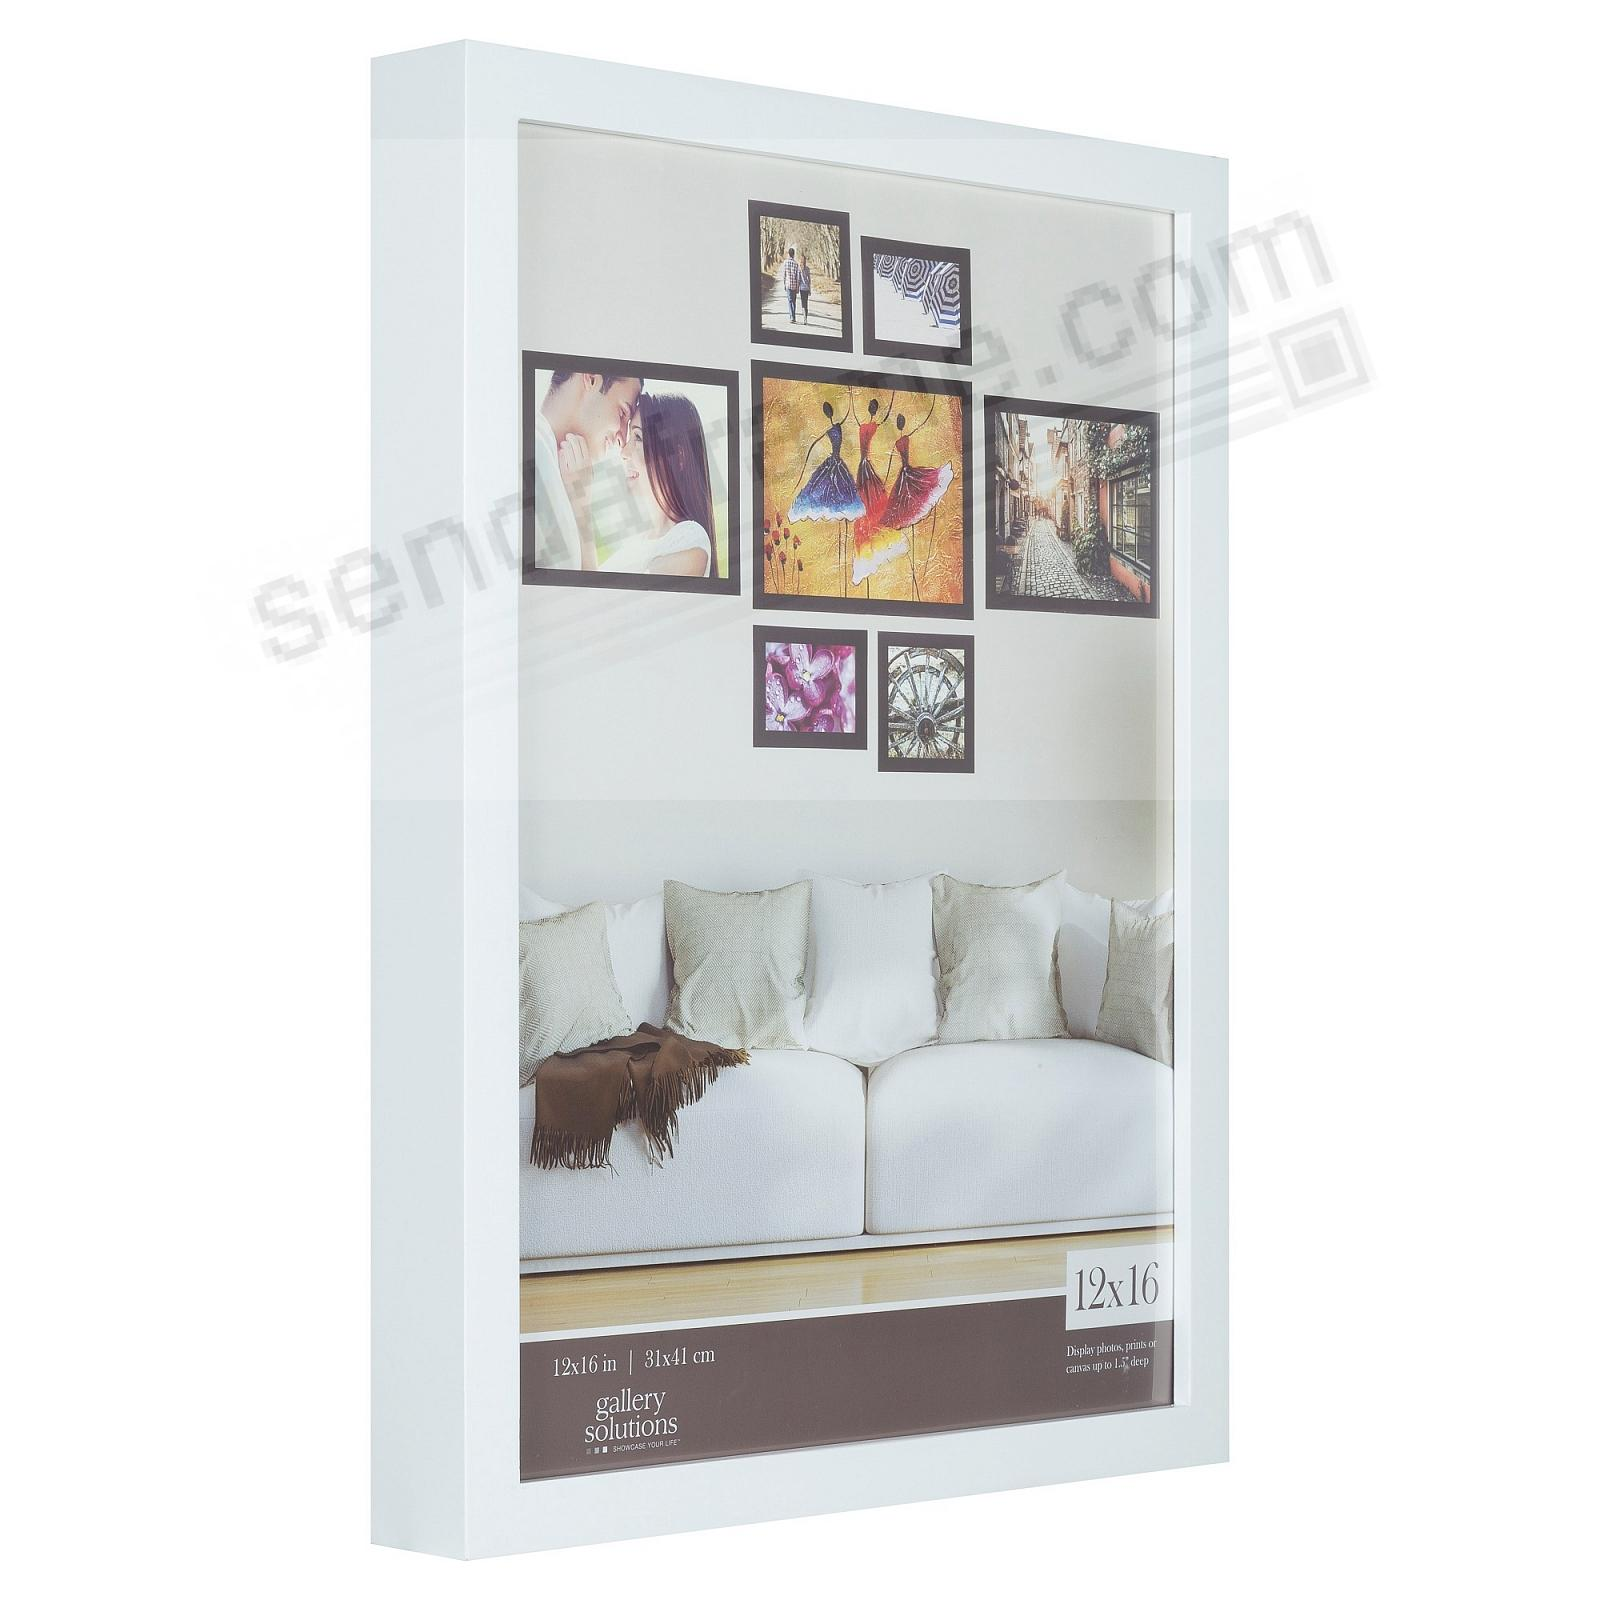 WHITE GALLERY 12x16 frame by Gallery Solutions®